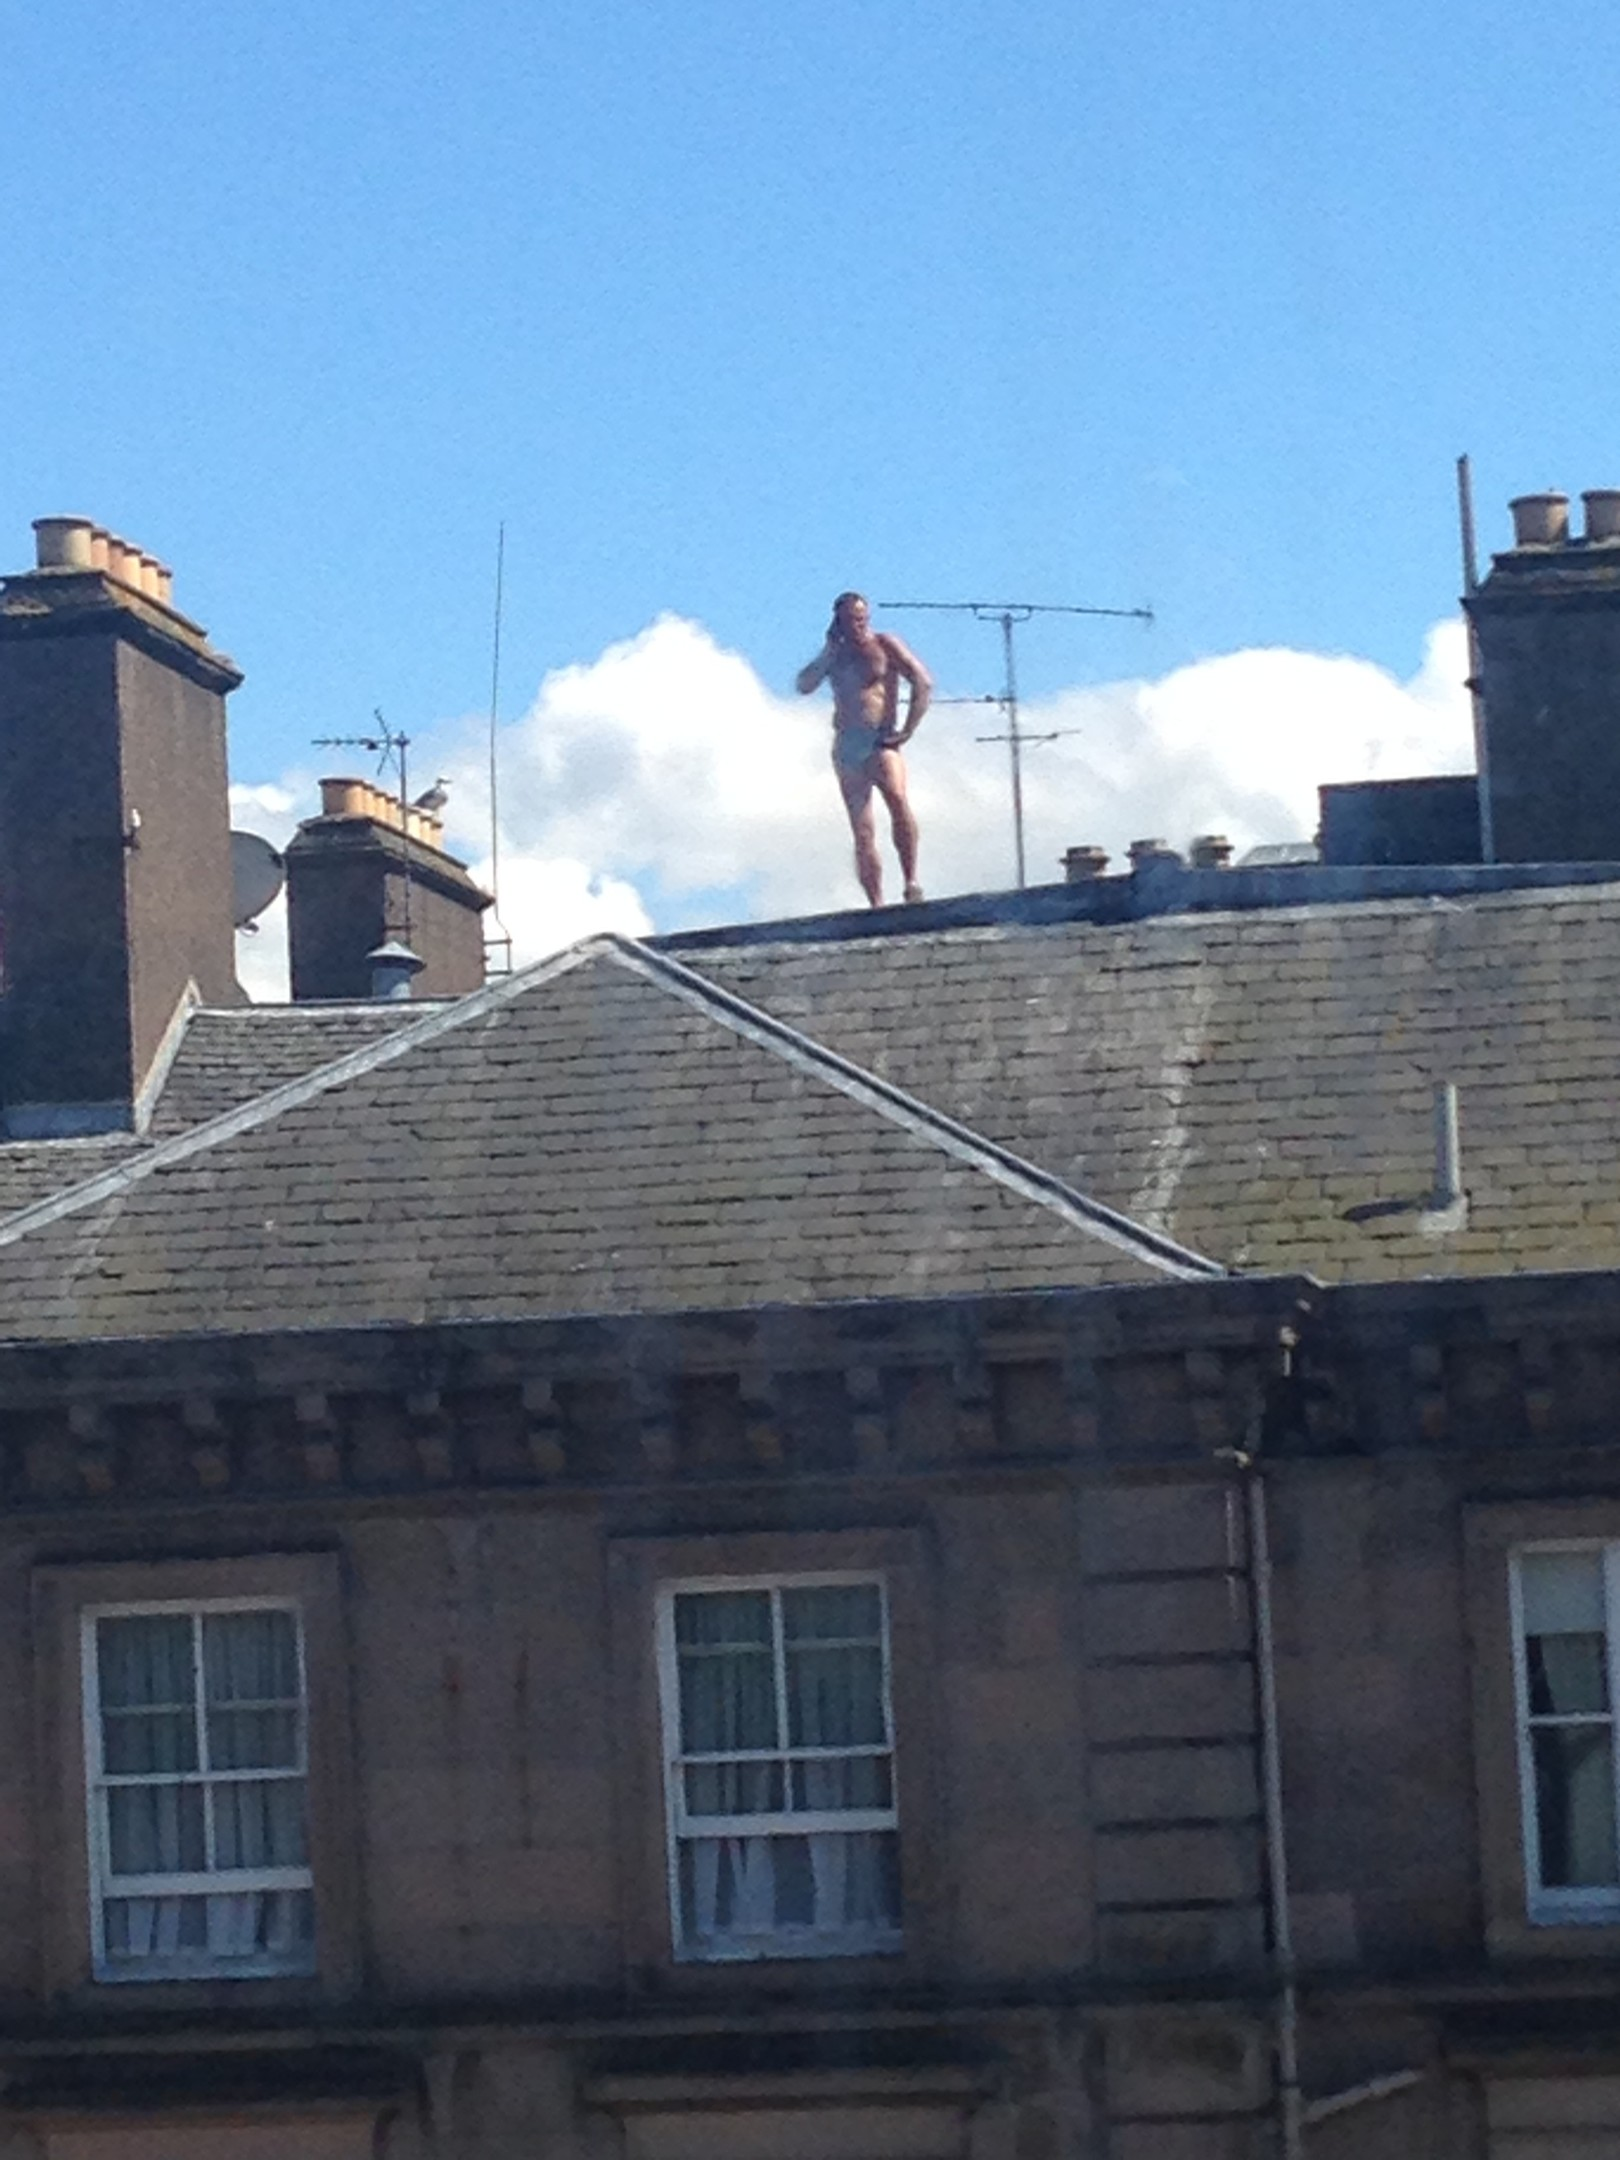 A man in his underpants on top of the Inverness Royal Highland Hotel